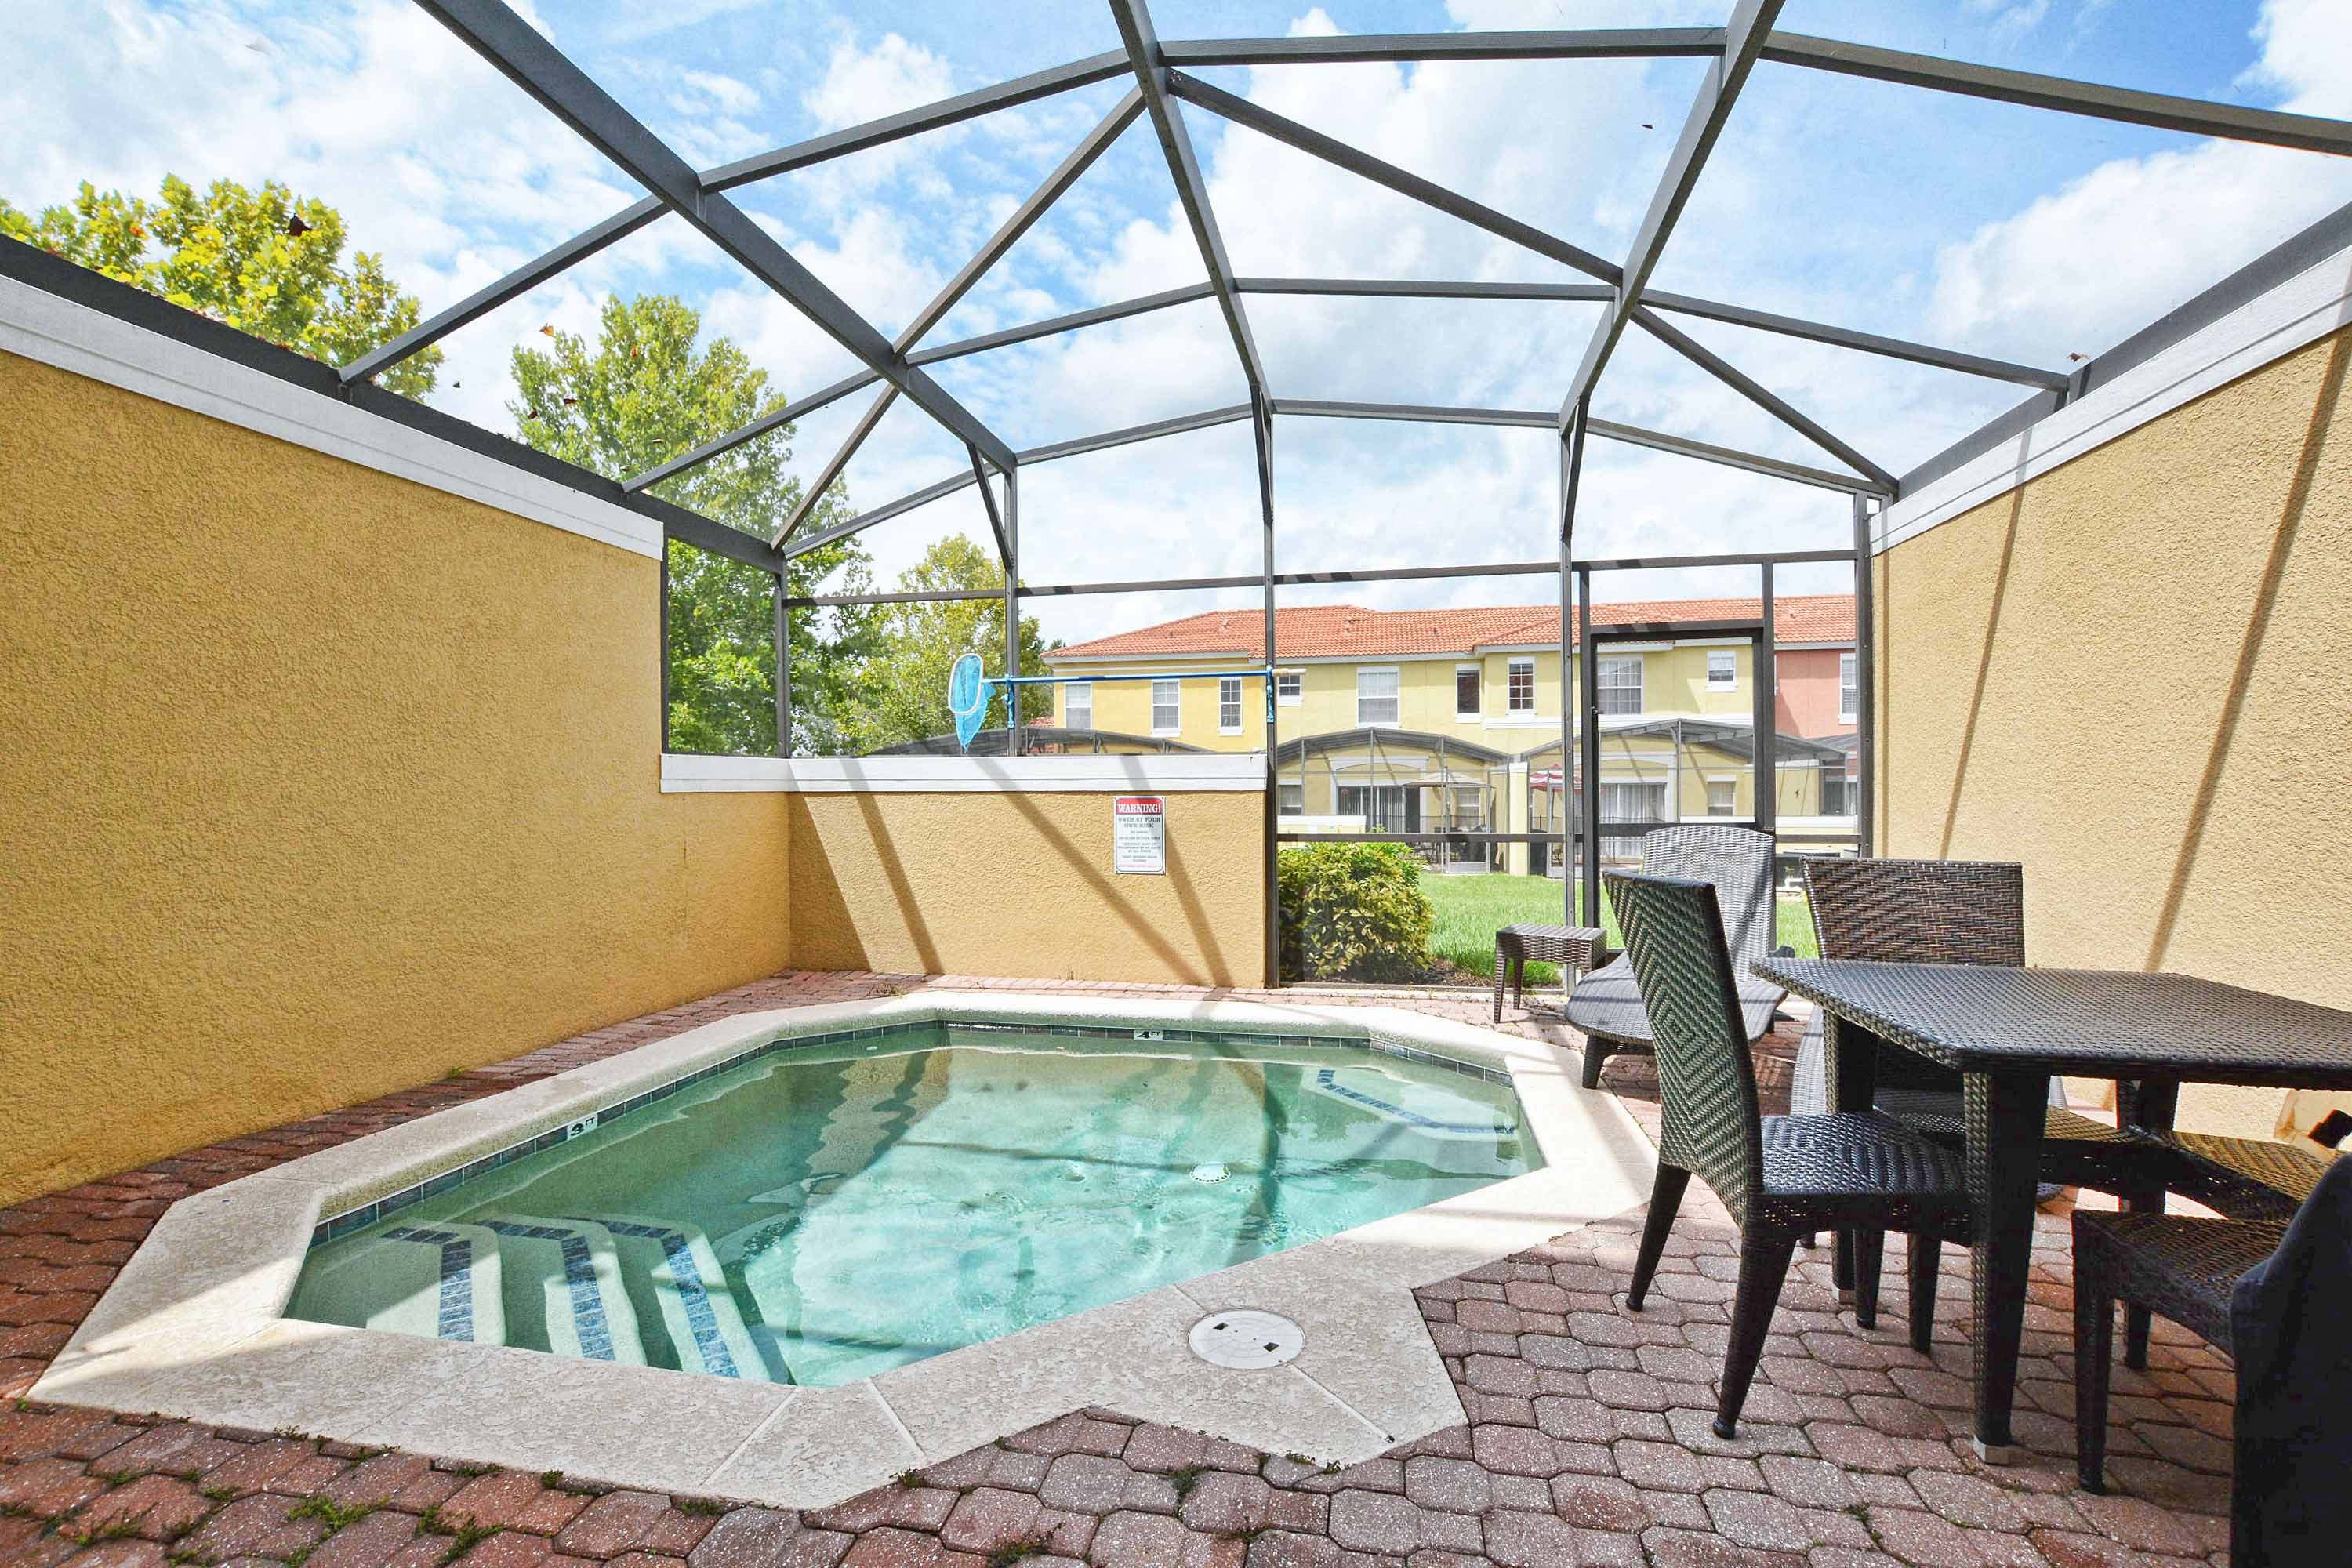 Vacation Homes For Rent in Kissimmee FL, Encantada | Unit 2650EN